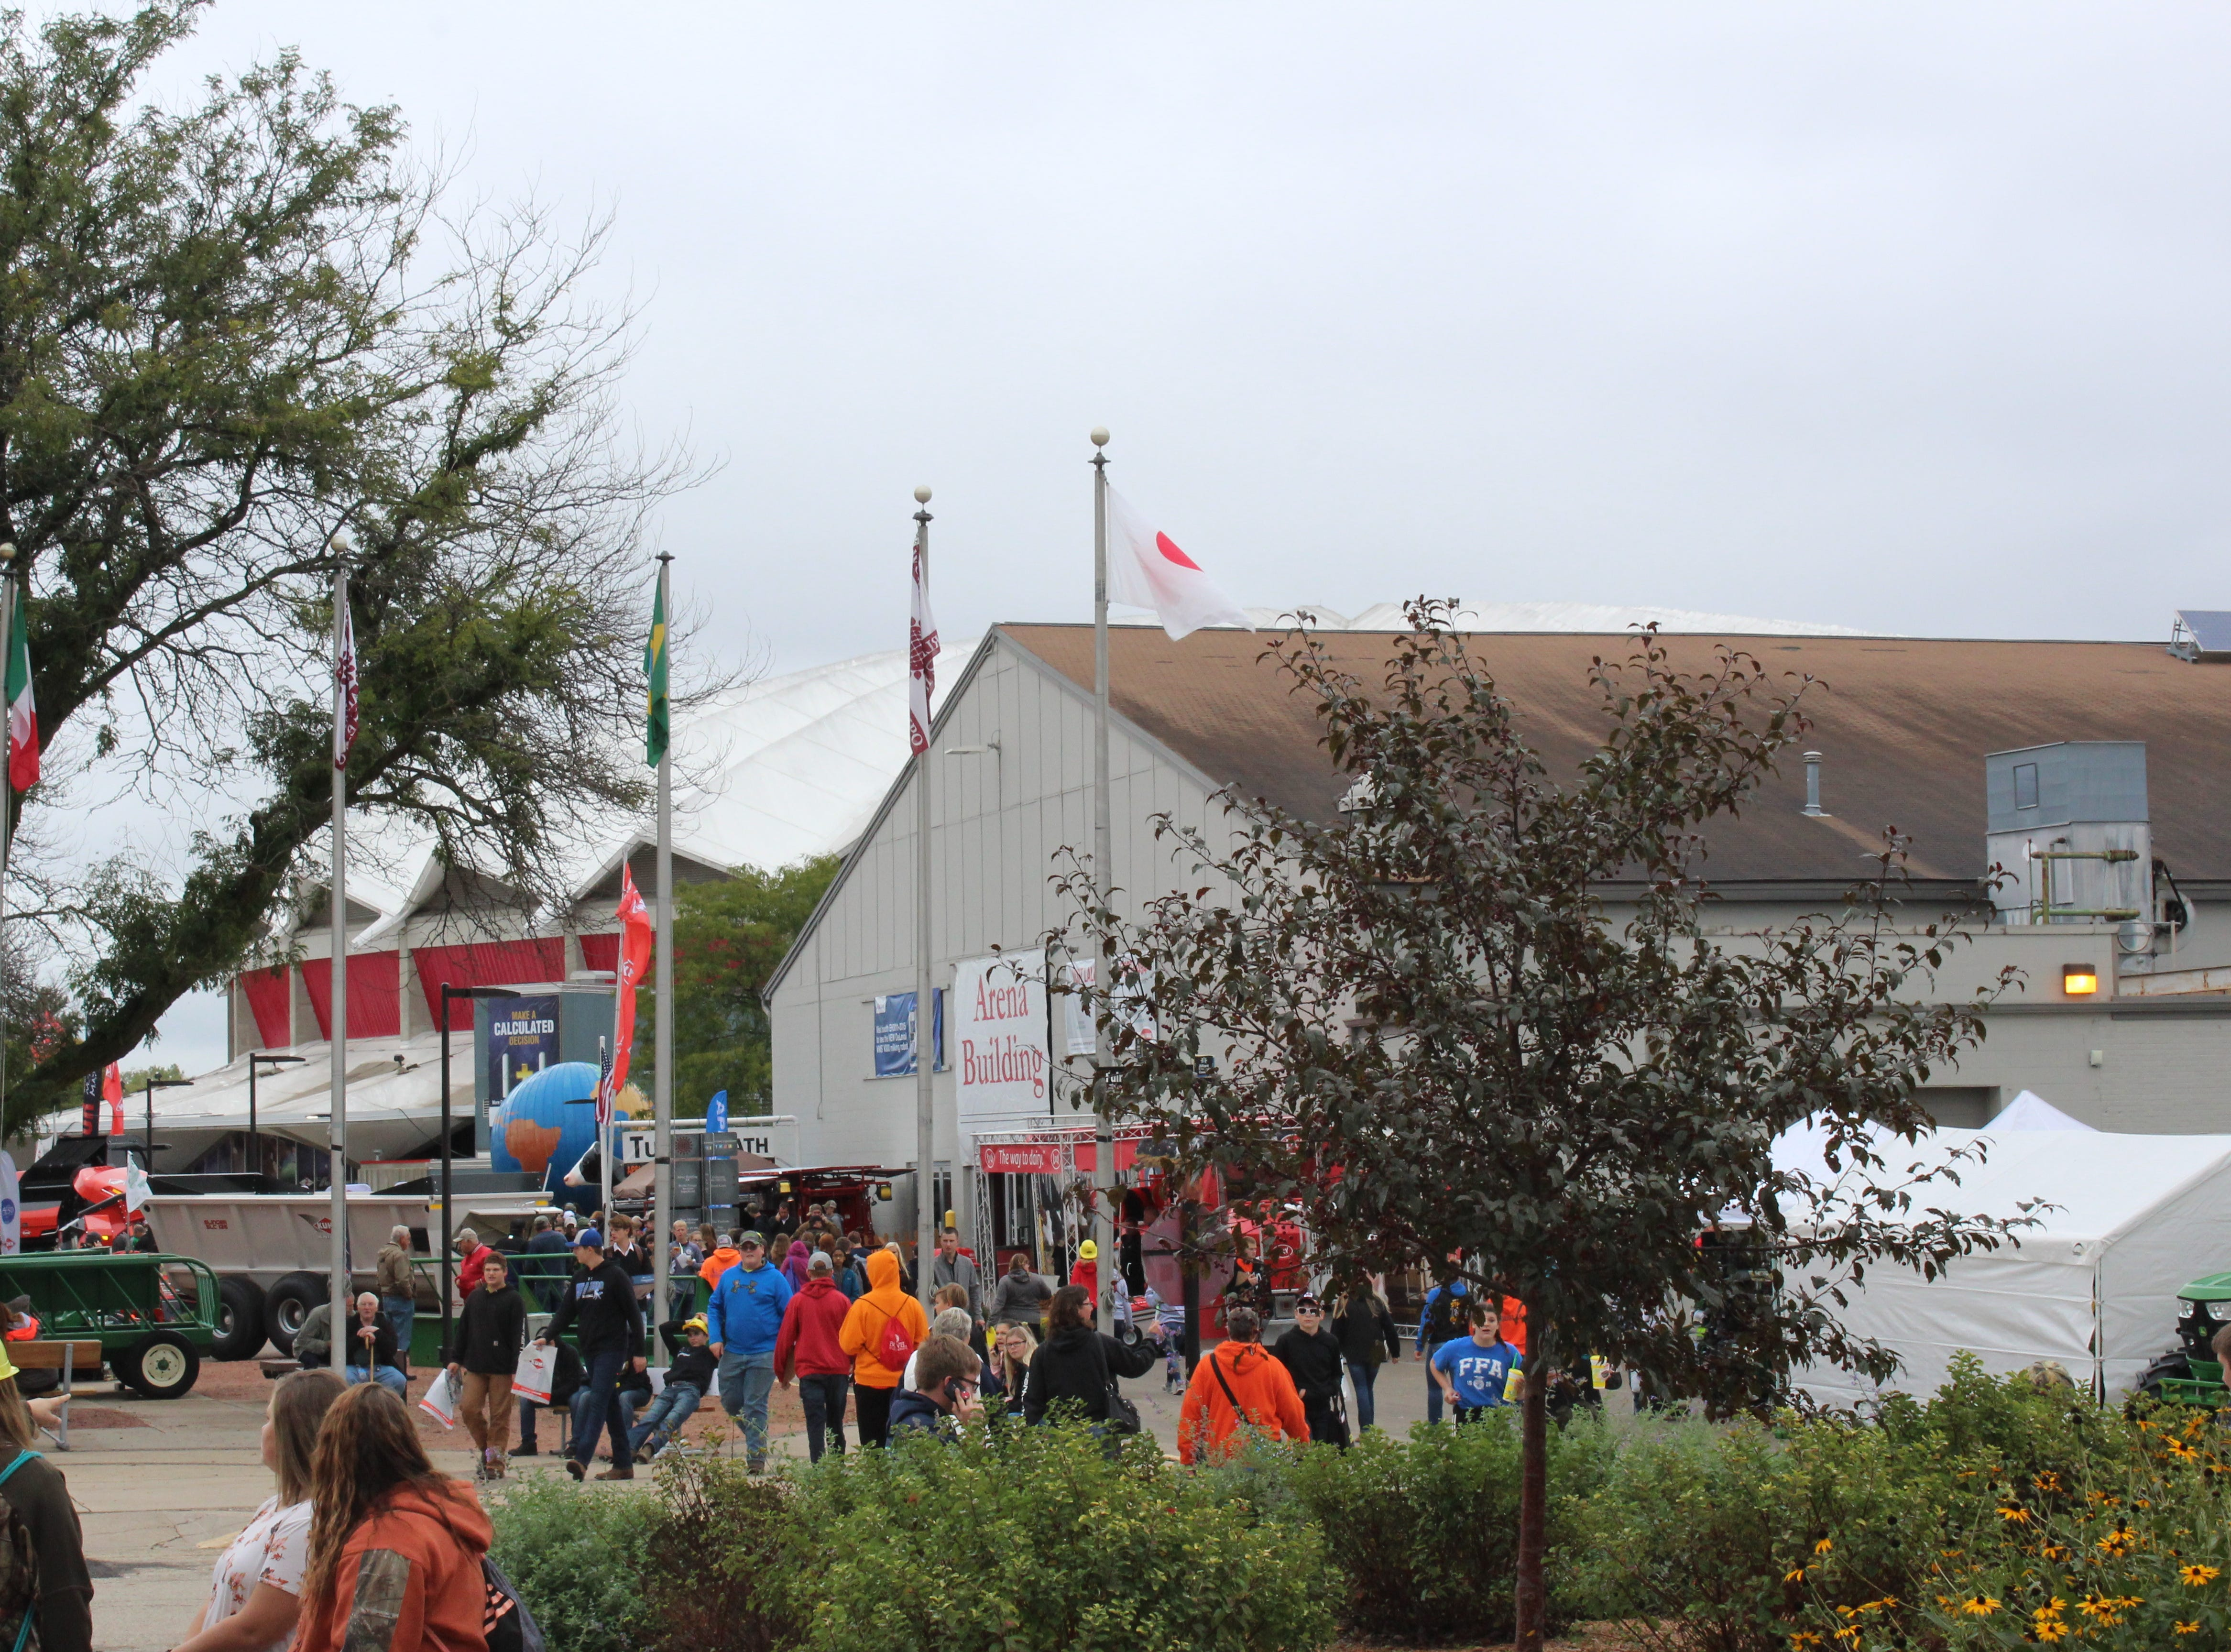 Opening day at the 2018 World Dairy Expo.